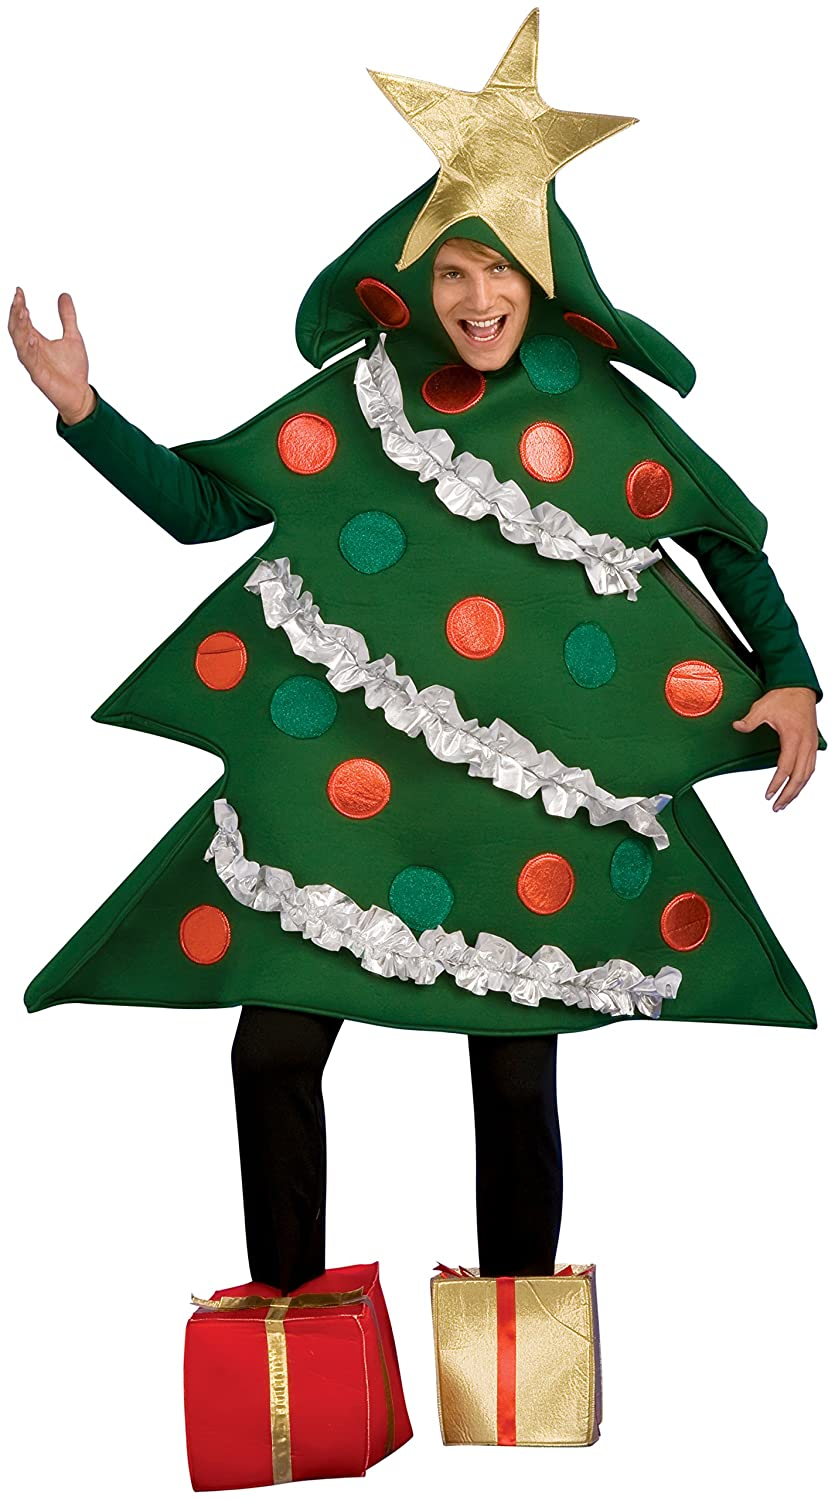 amazoncom rubies costume co mens christmas tree jumper with present boot tops clothing - Christmas Tree Costume